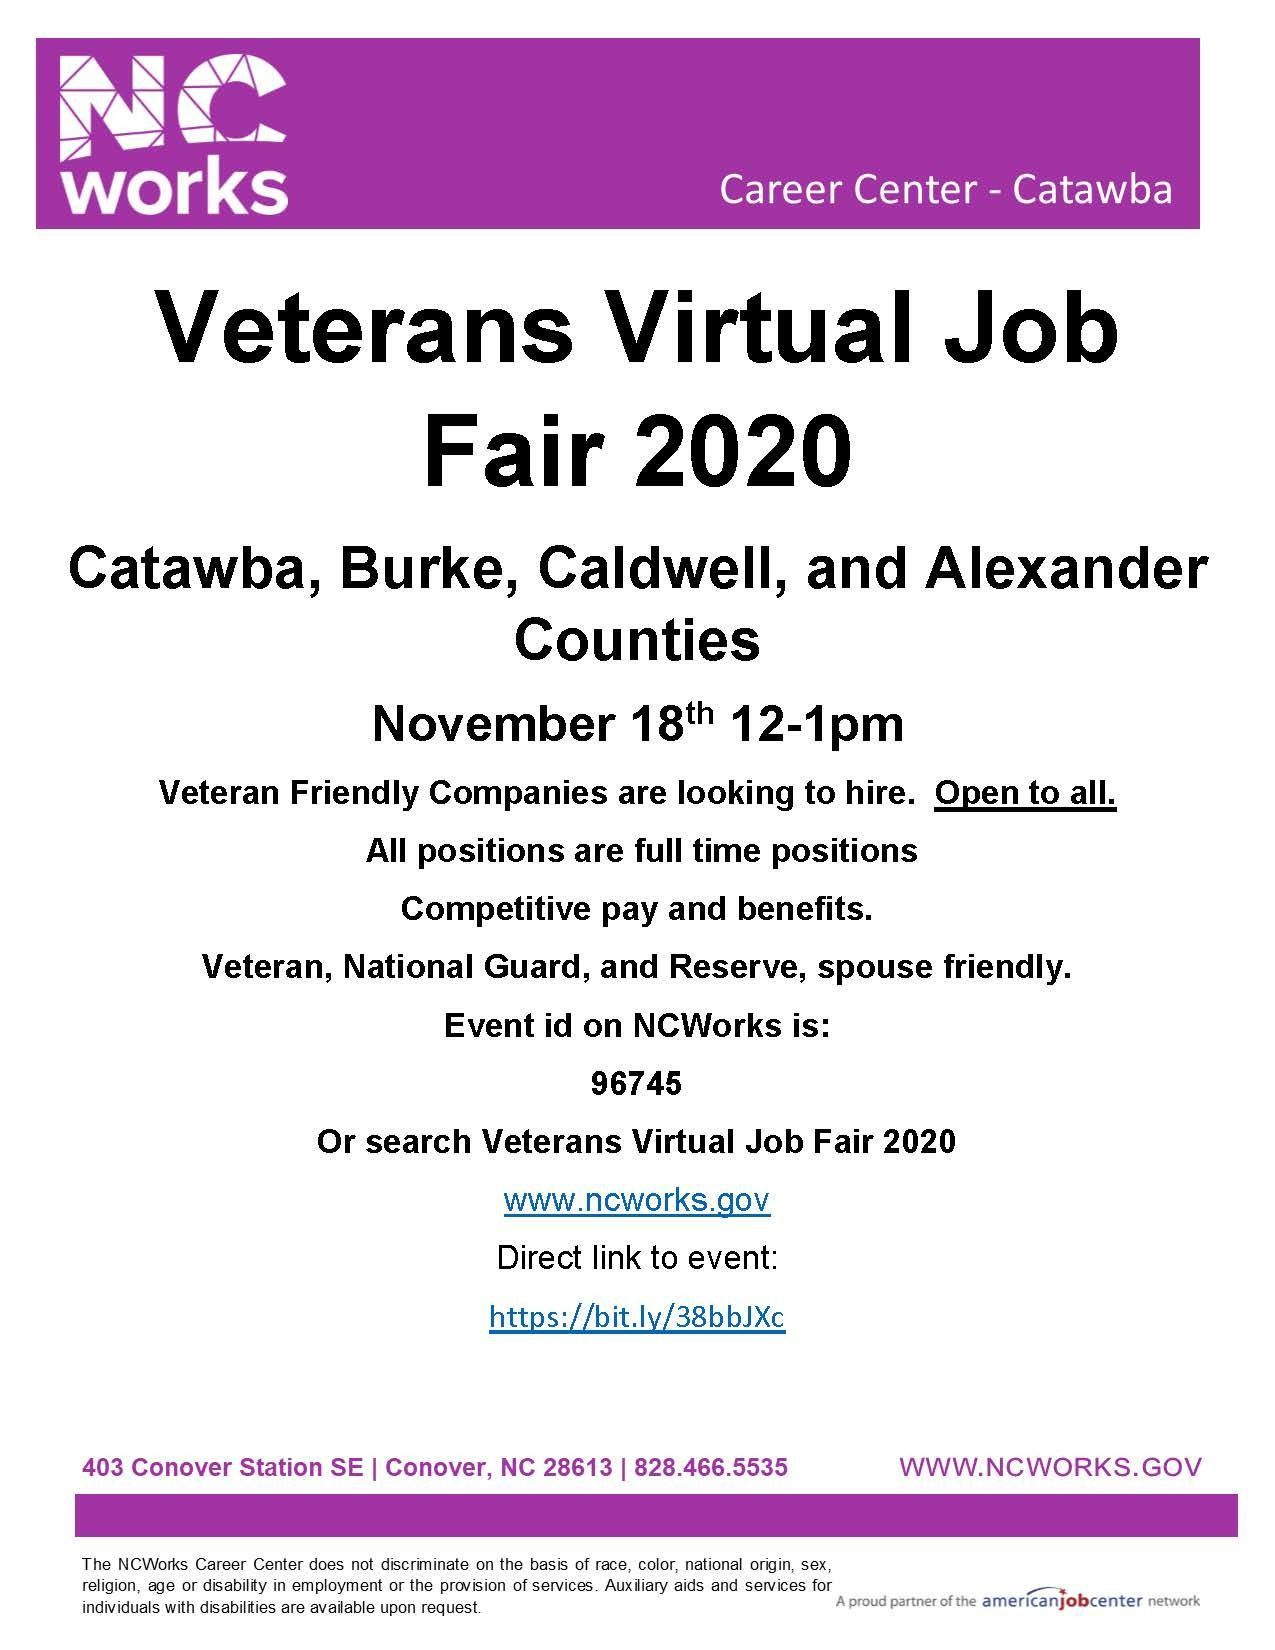 Veterans Virtual Job Fair 2020